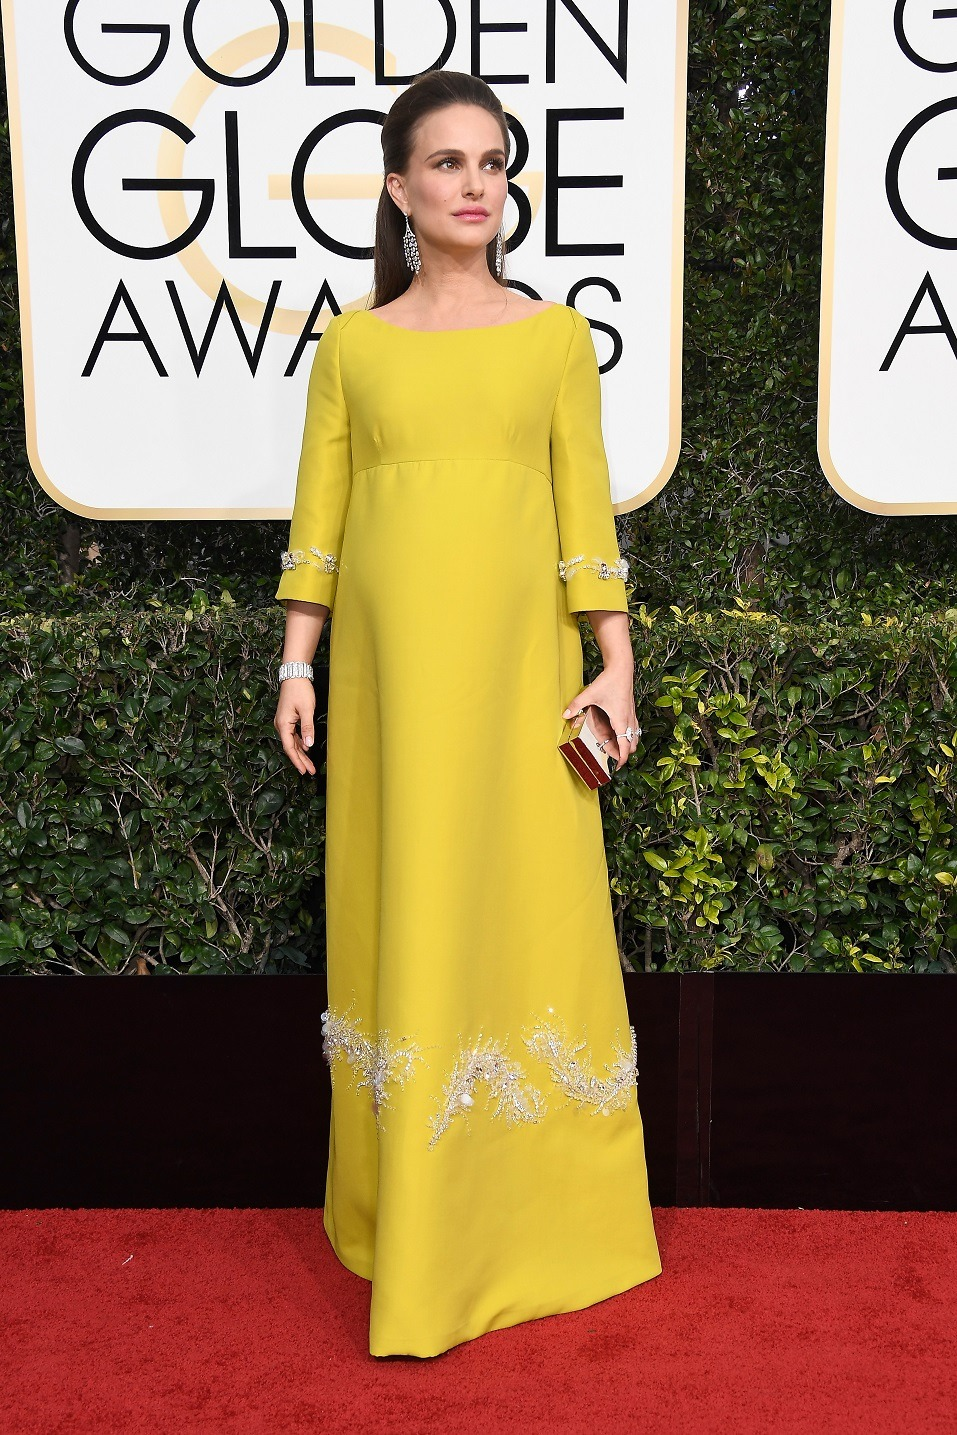 Actress Natalie Portman attends the 74th Annual Golden Globe Awards at The Beverly Hilton Hotel